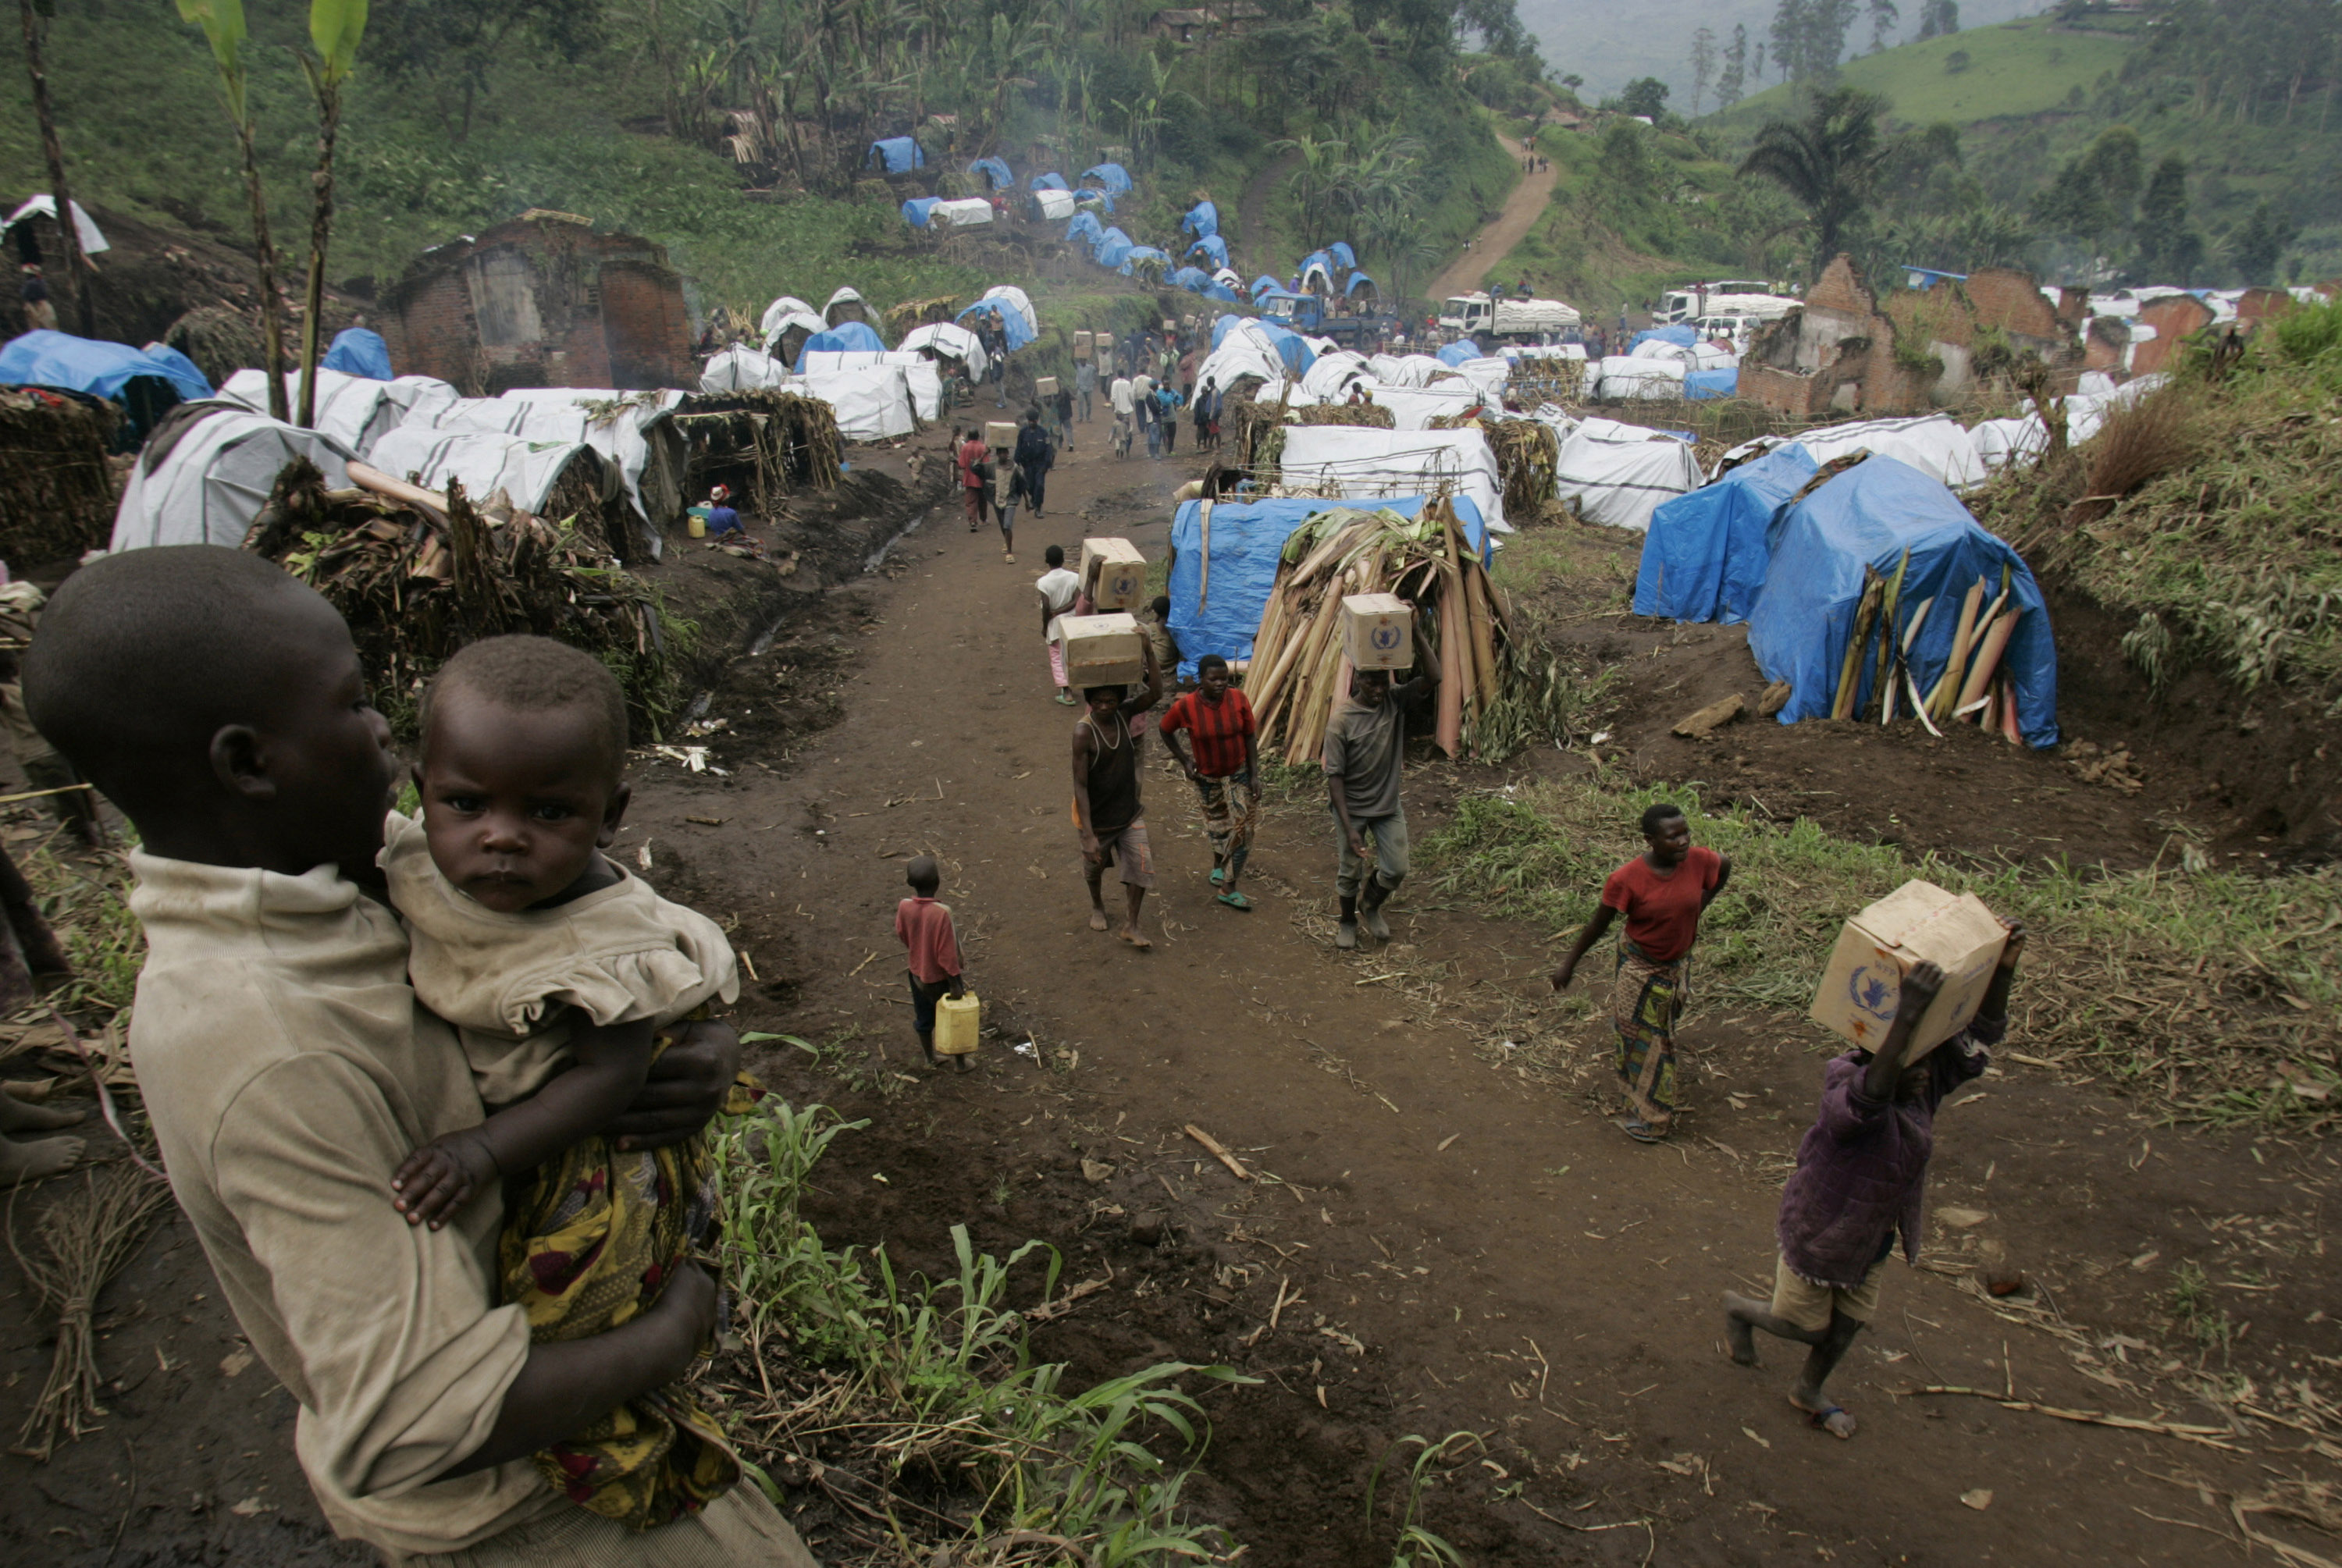 A Congolese boy carries his sister at a camp for displaced persons in Masisi, Congo in this November 22 photo.